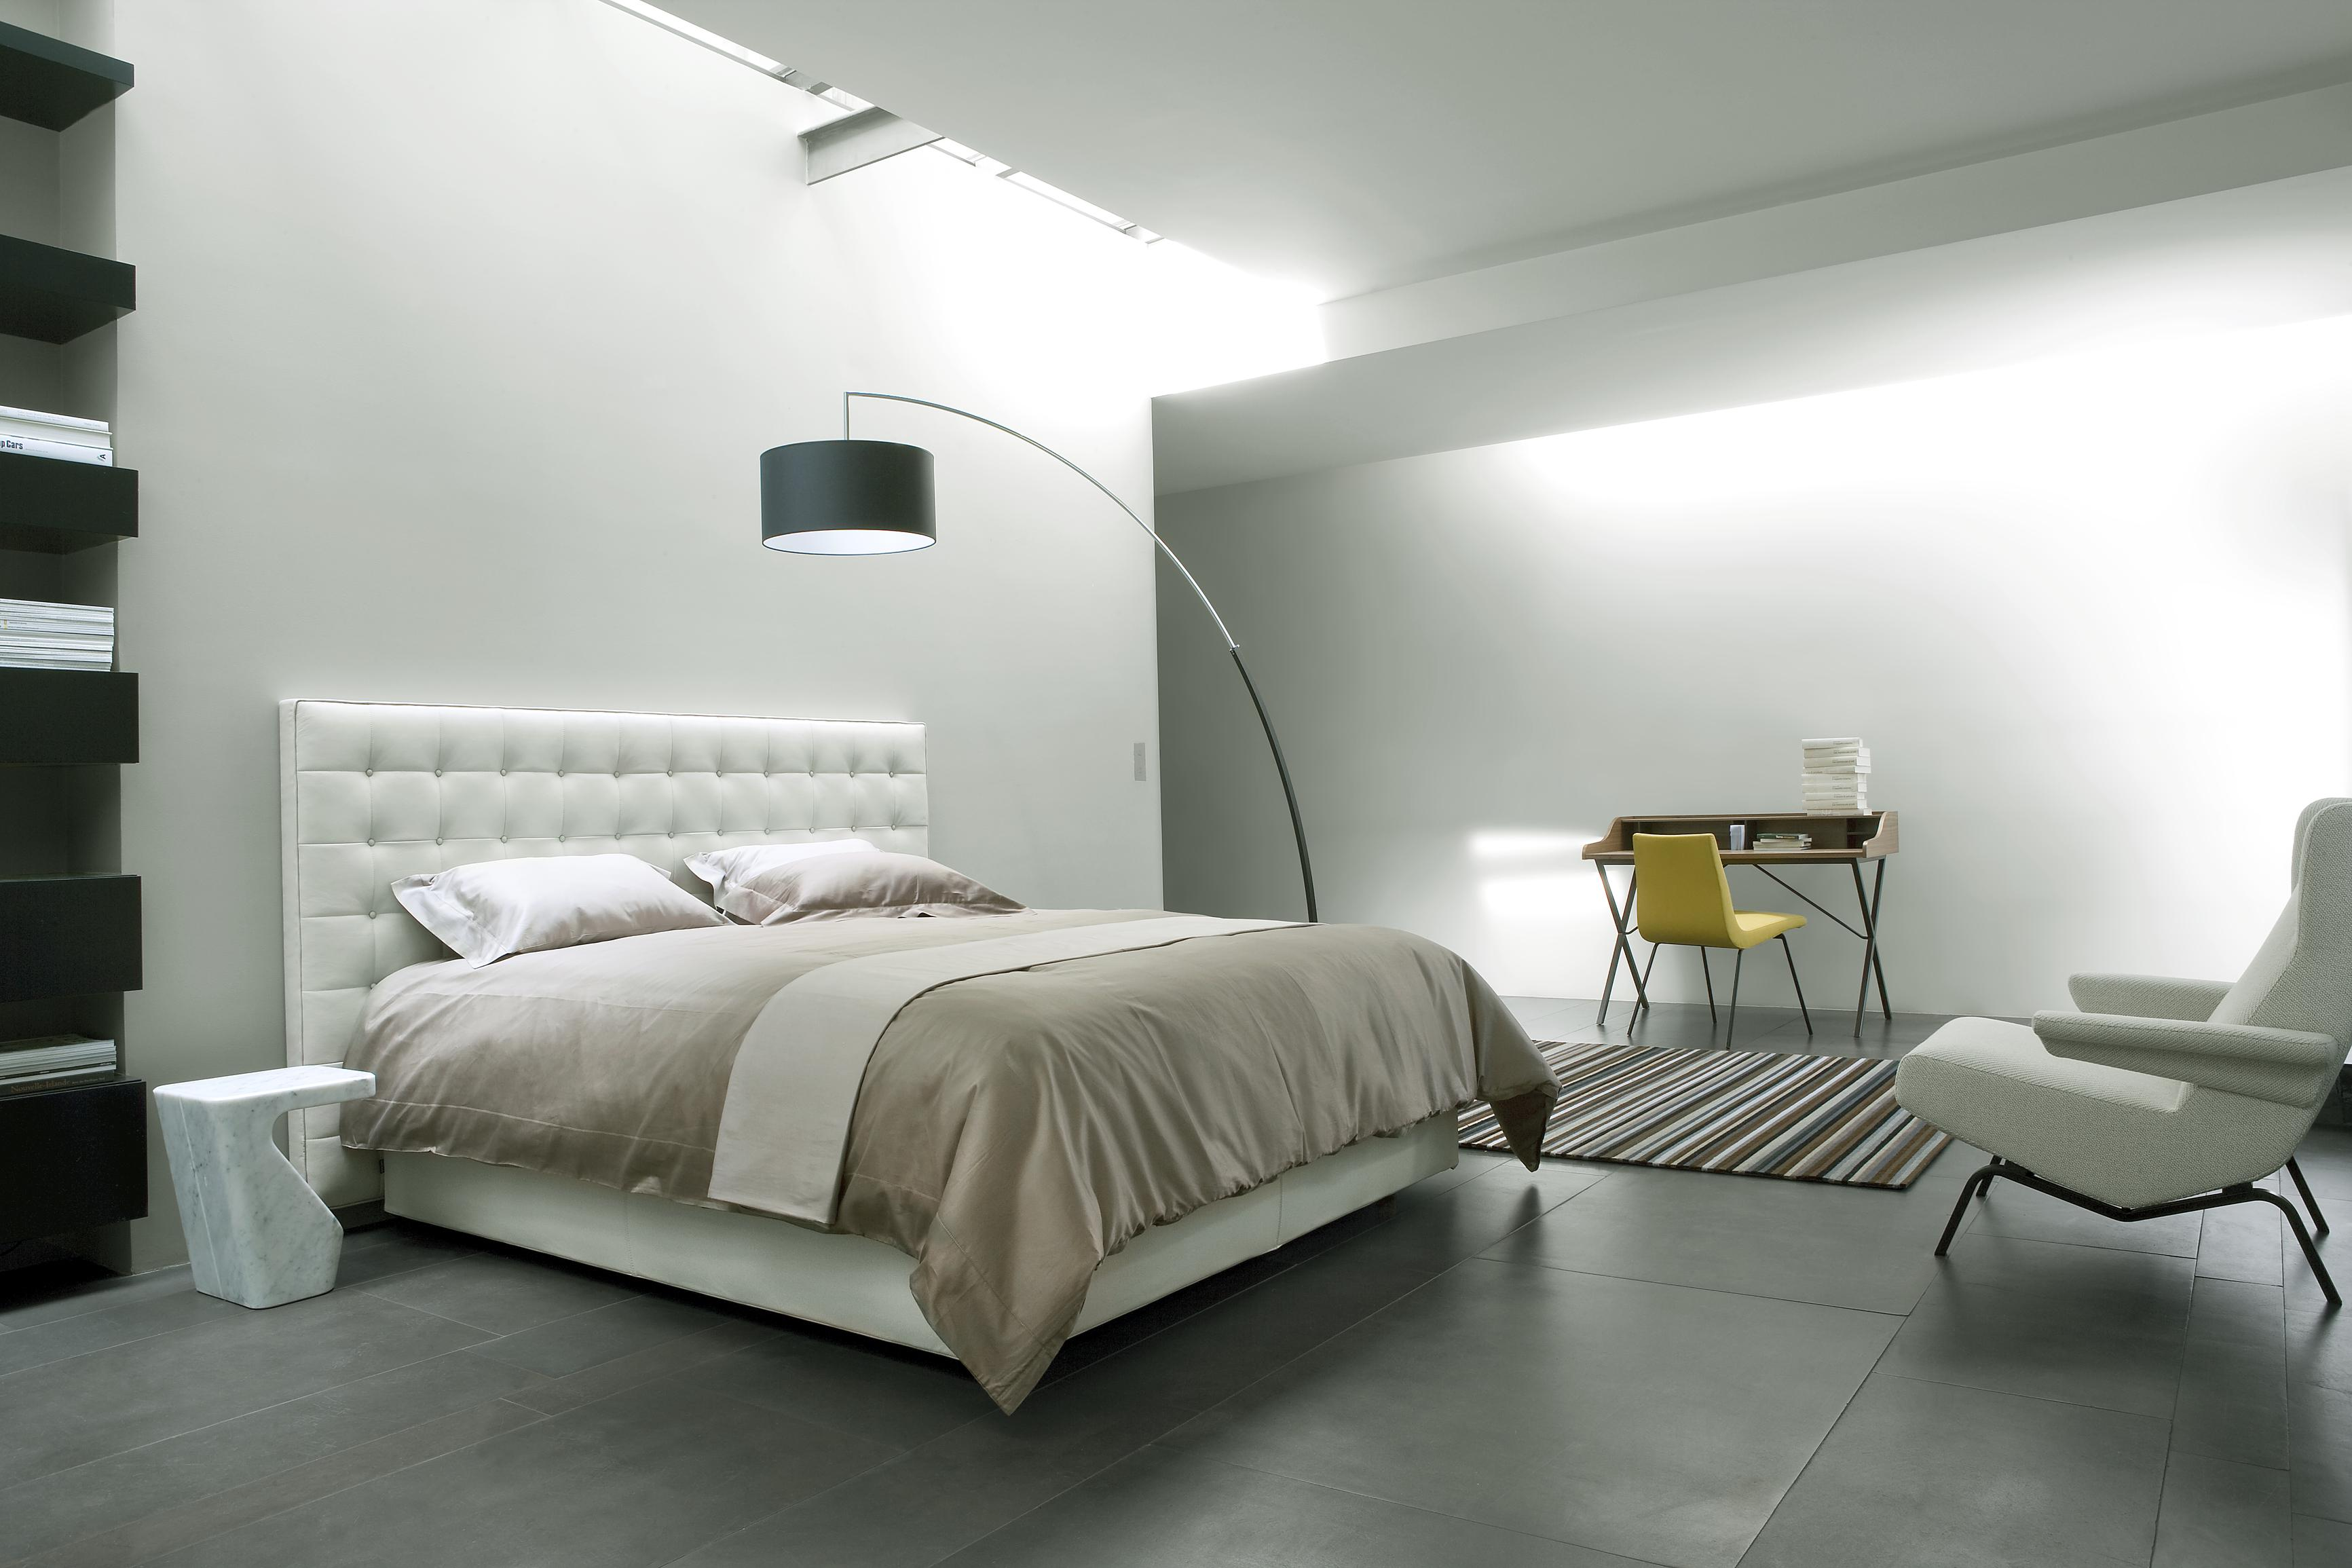 nador lits du designer ligne roset ligne roset site officiel. Black Bedroom Furniture Sets. Home Design Ideas